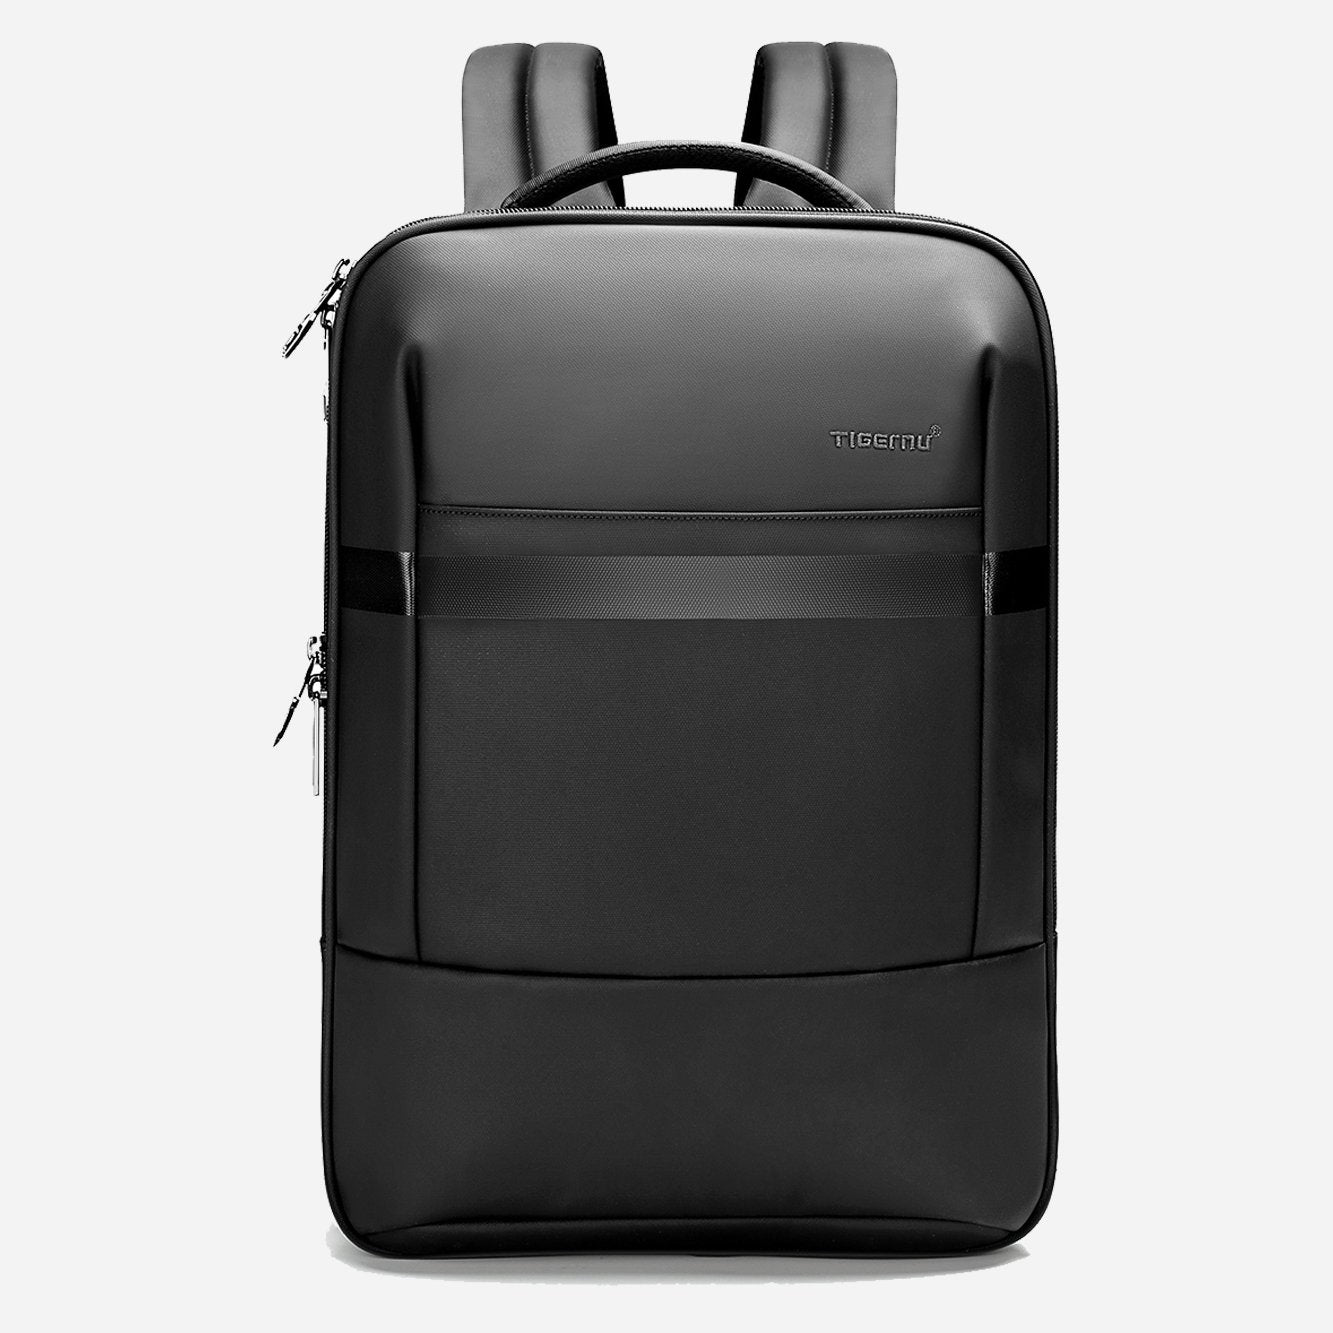 Black business travel backpack